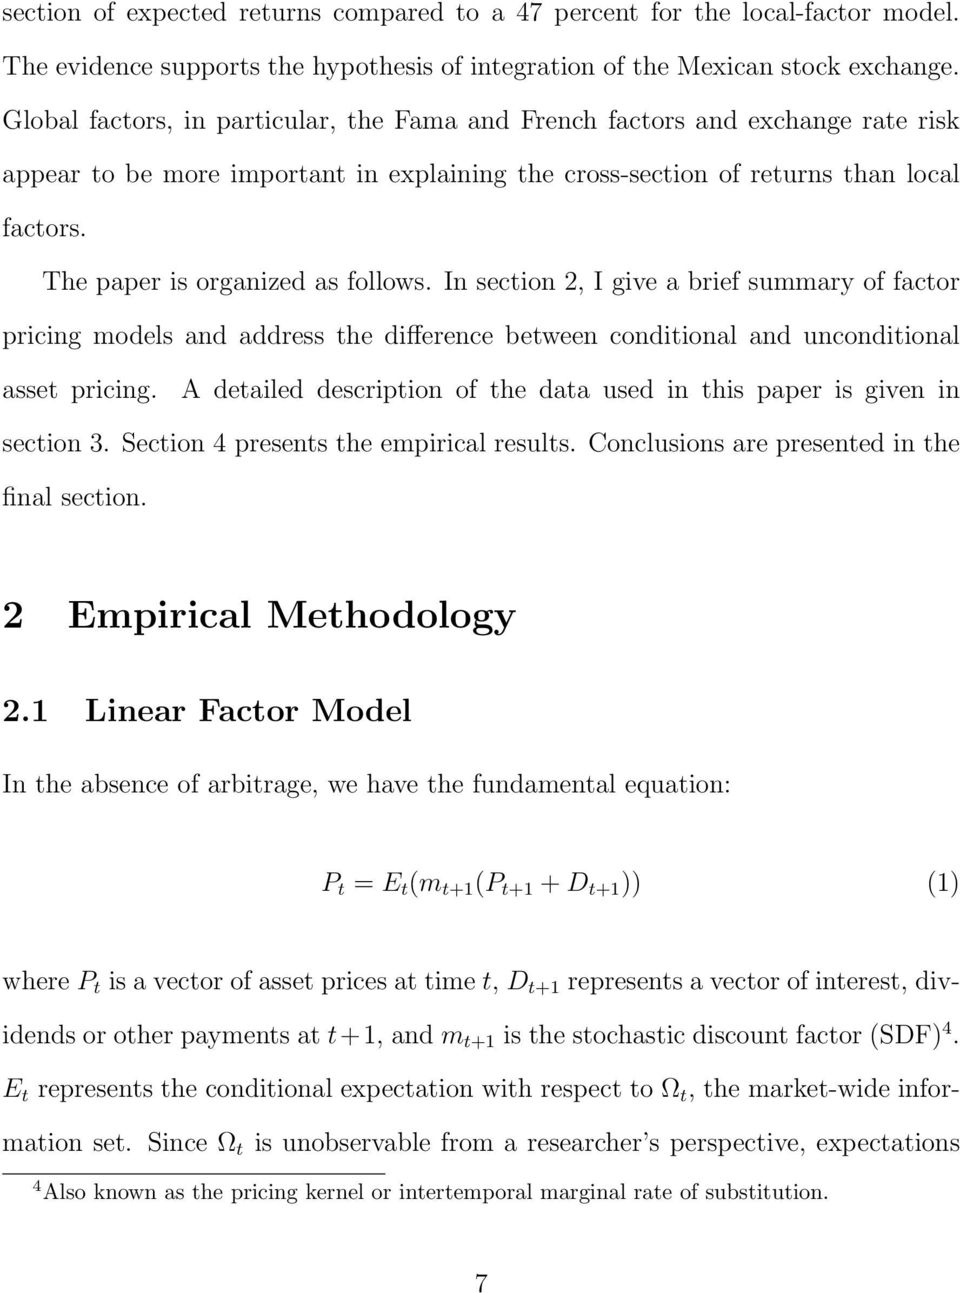 The paper is organized as follows. In section 2, I give a brief summary of factor pricing models and address the difference between conditional and unconditional asset pricing.